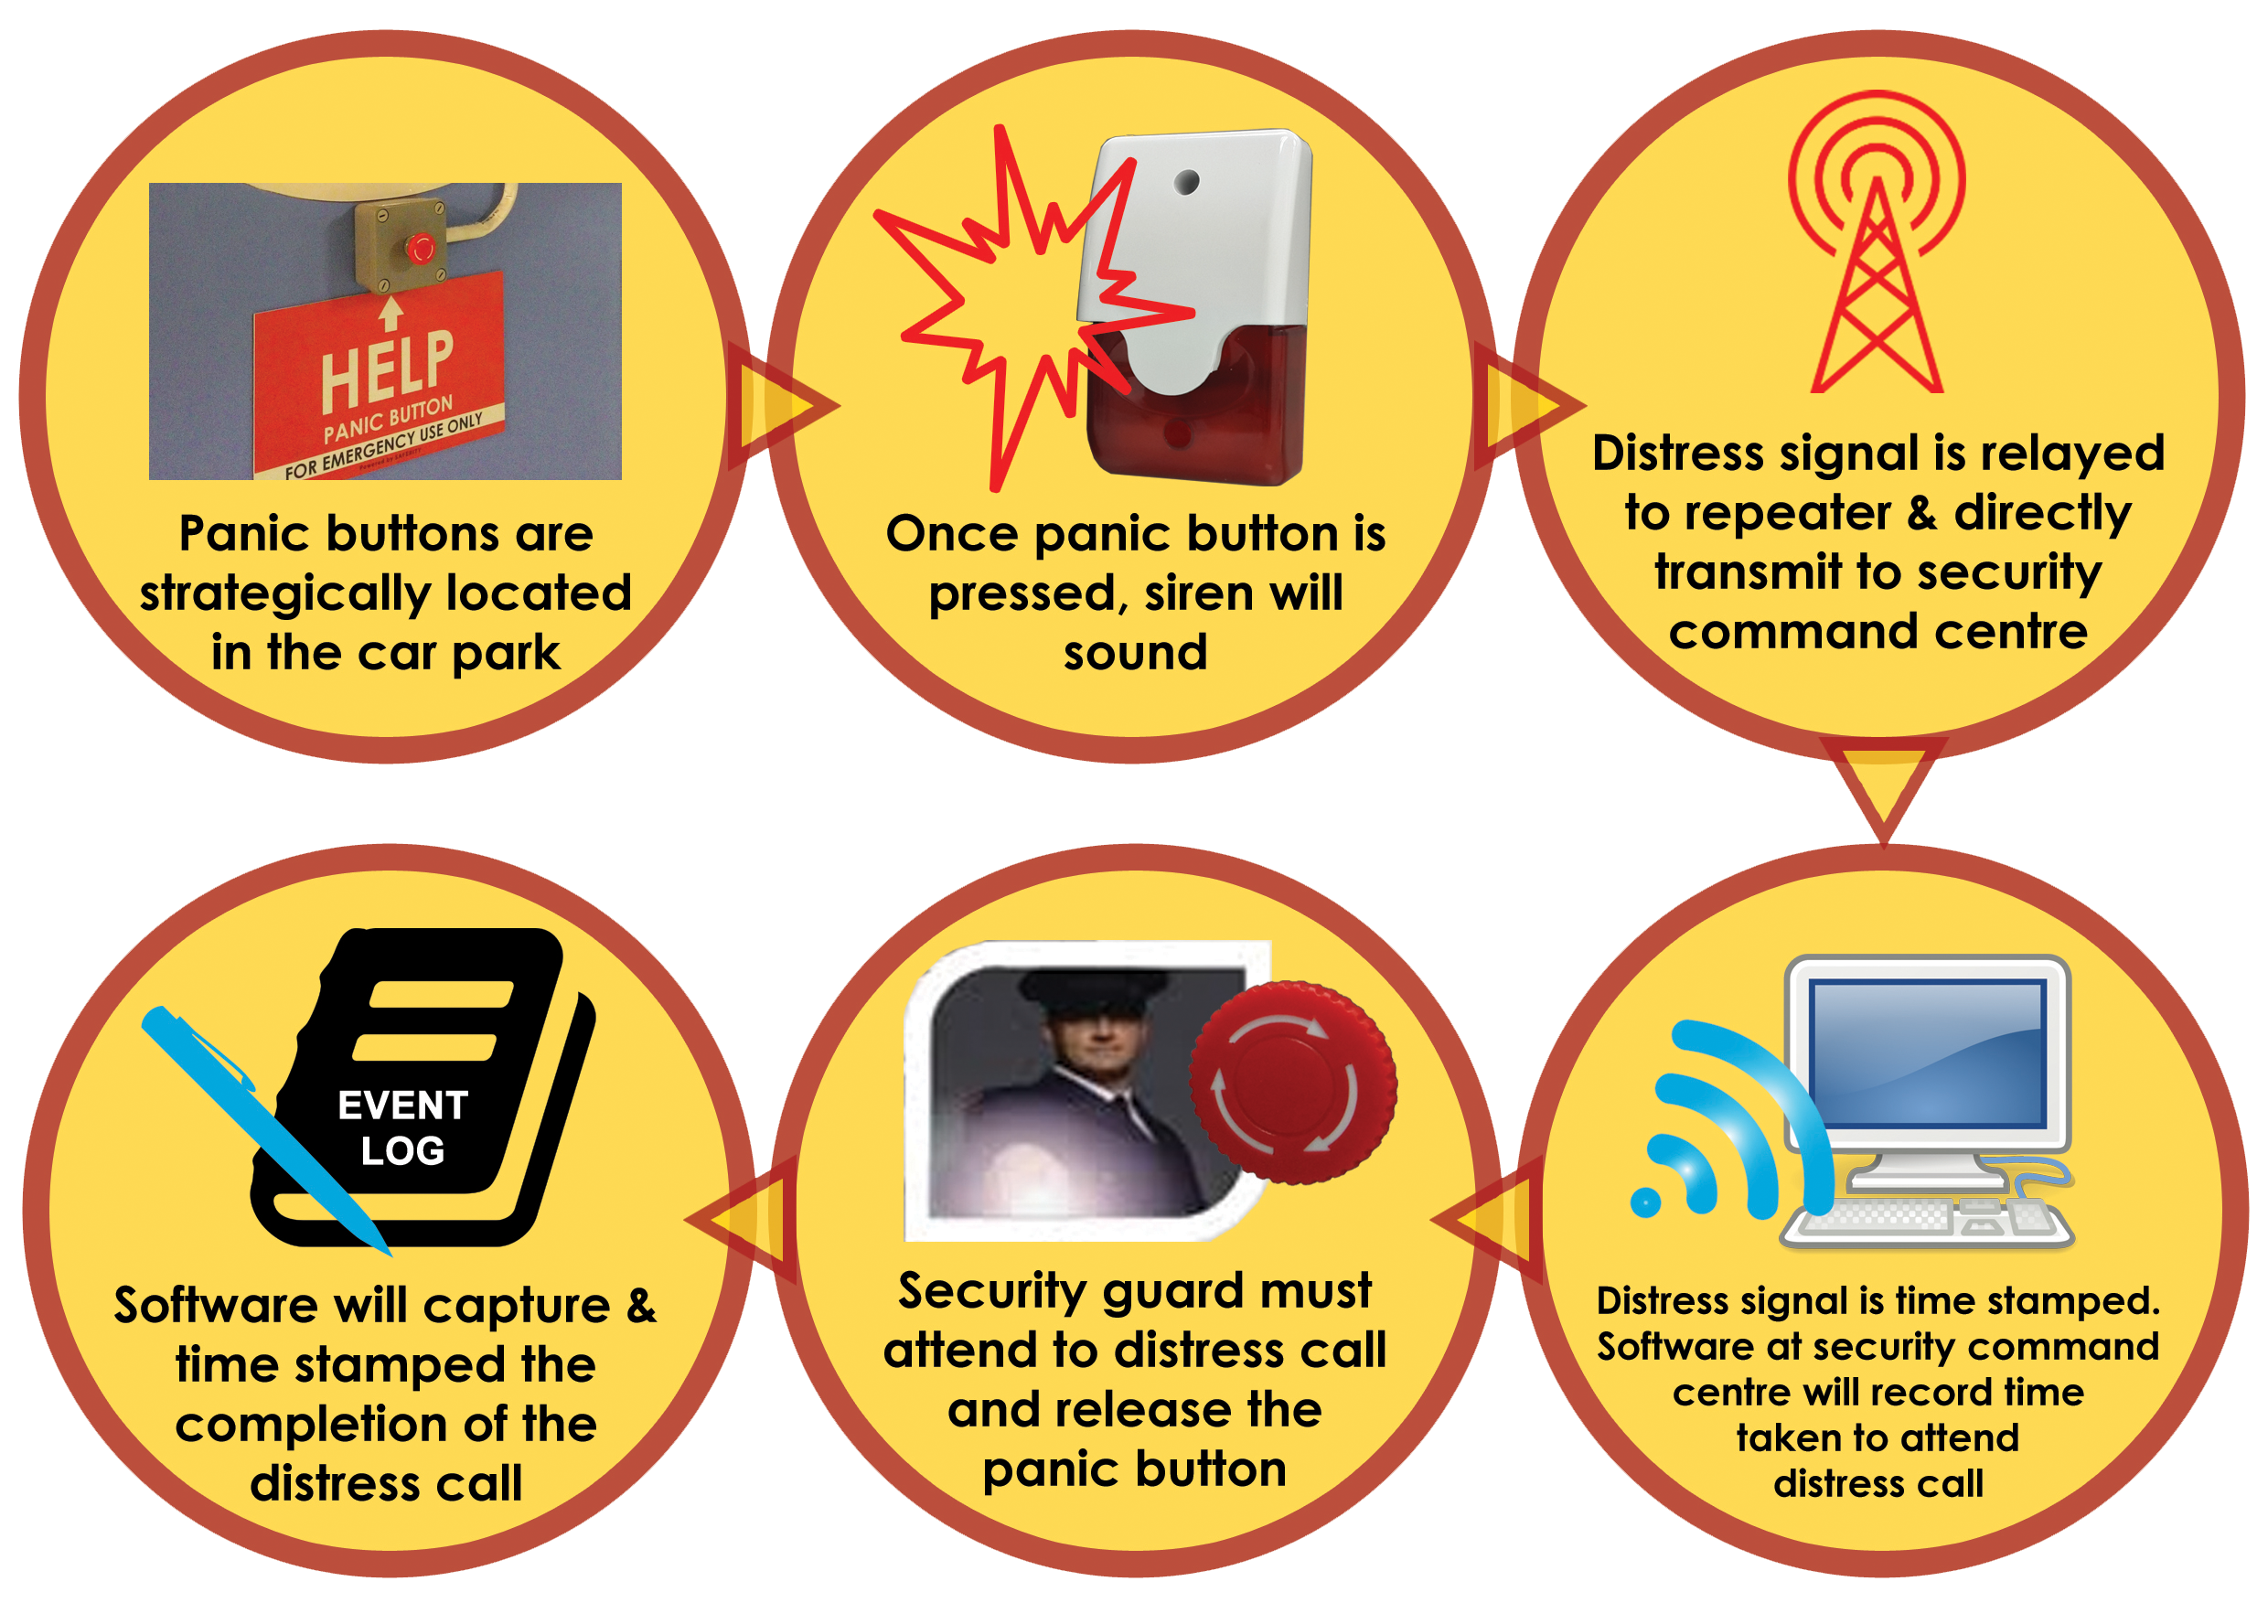 panic button specialized for car park wireless saferity